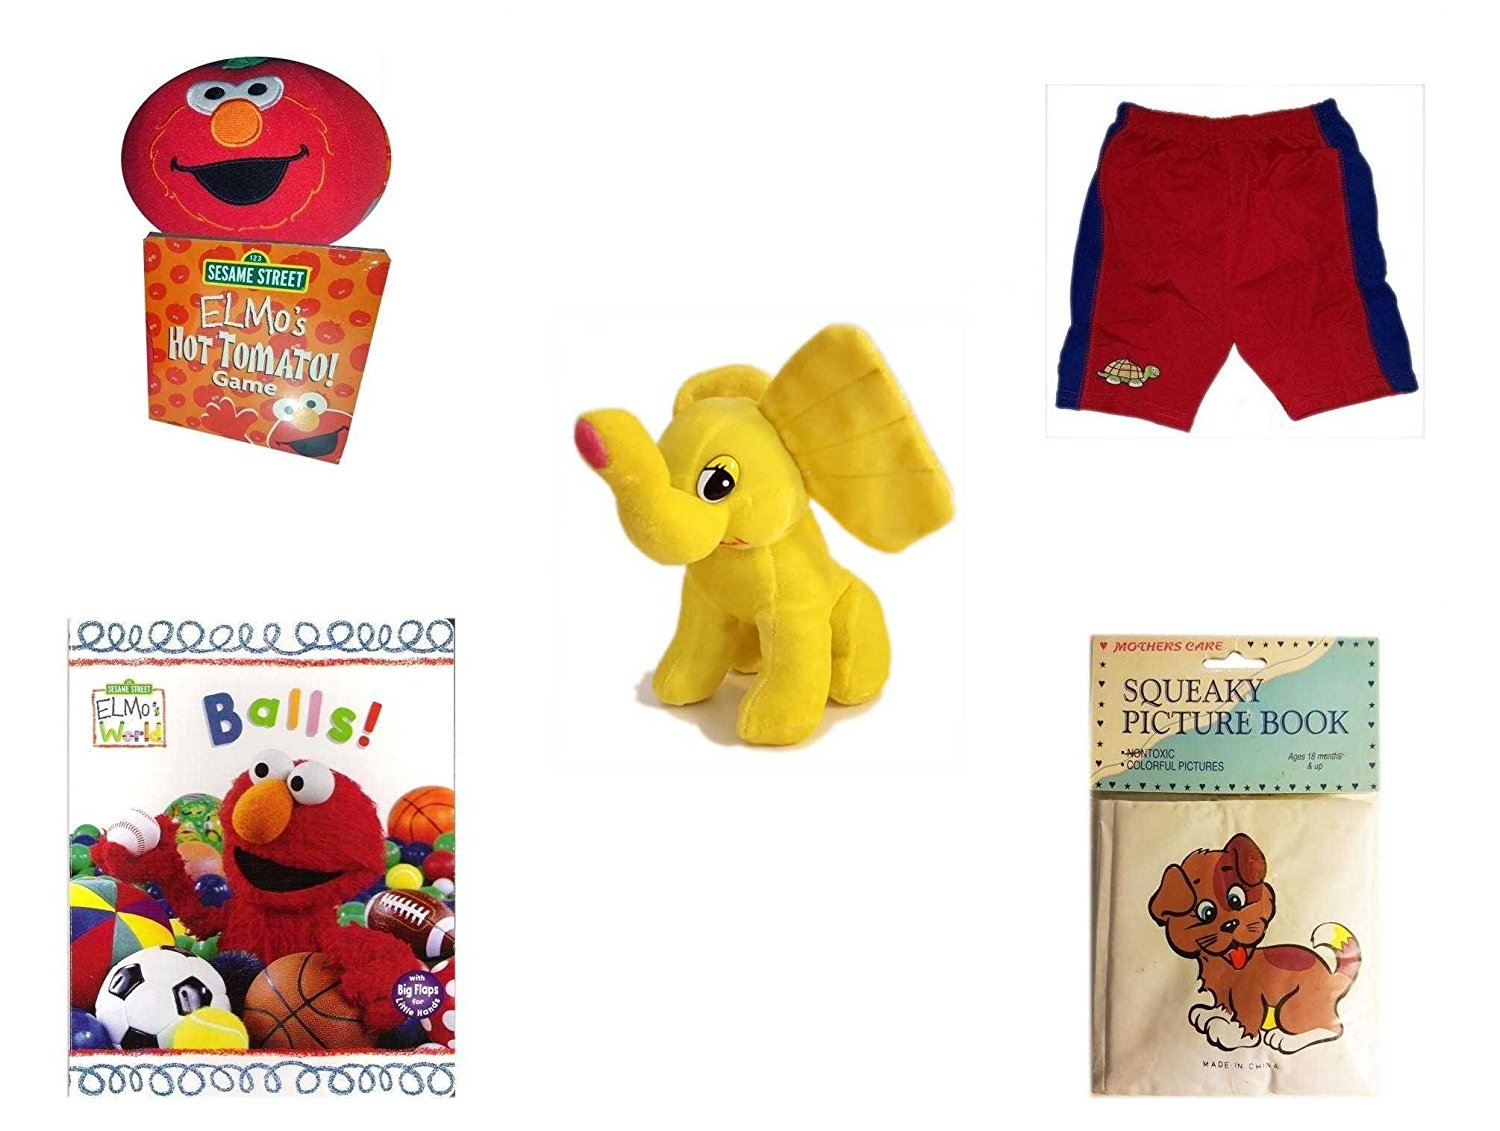 dd8cbe0c2b Get Quotations · Children's Gift Bundle - Ages 0-2 [5 Piece] - Giggling Elmo  Hot